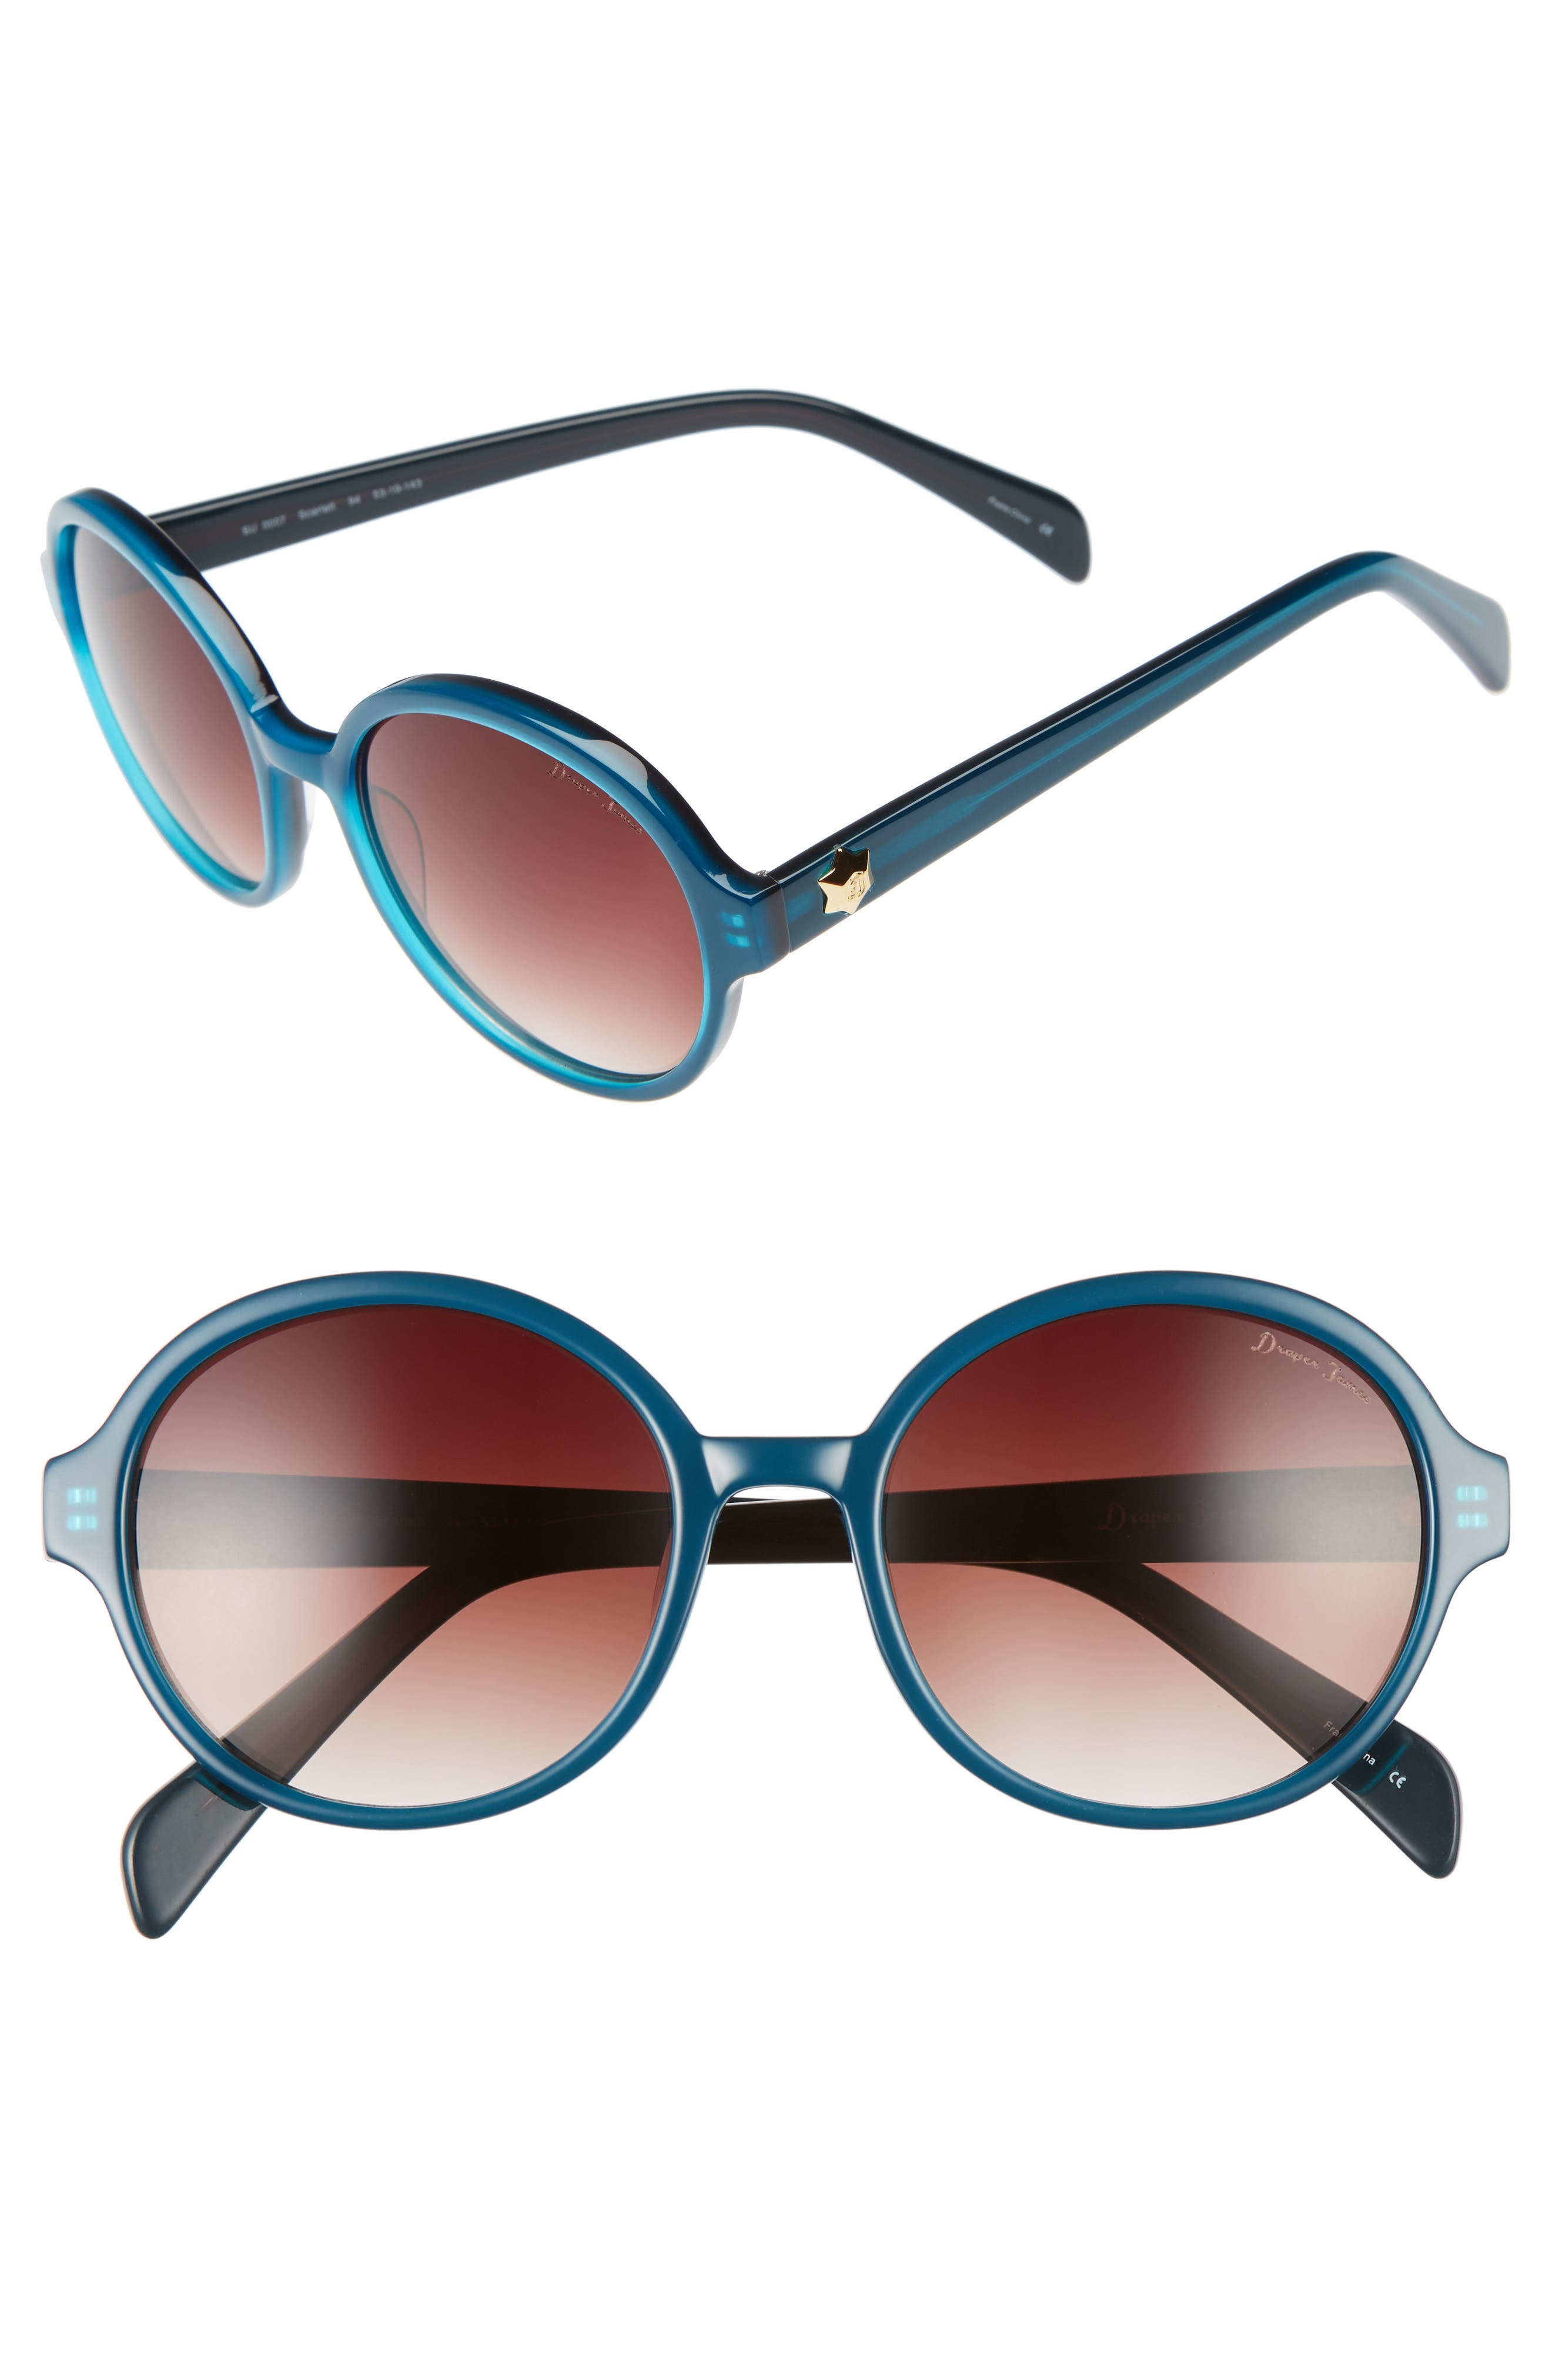 DRAPER JAMES 53mm Round Gradient Sunglasses